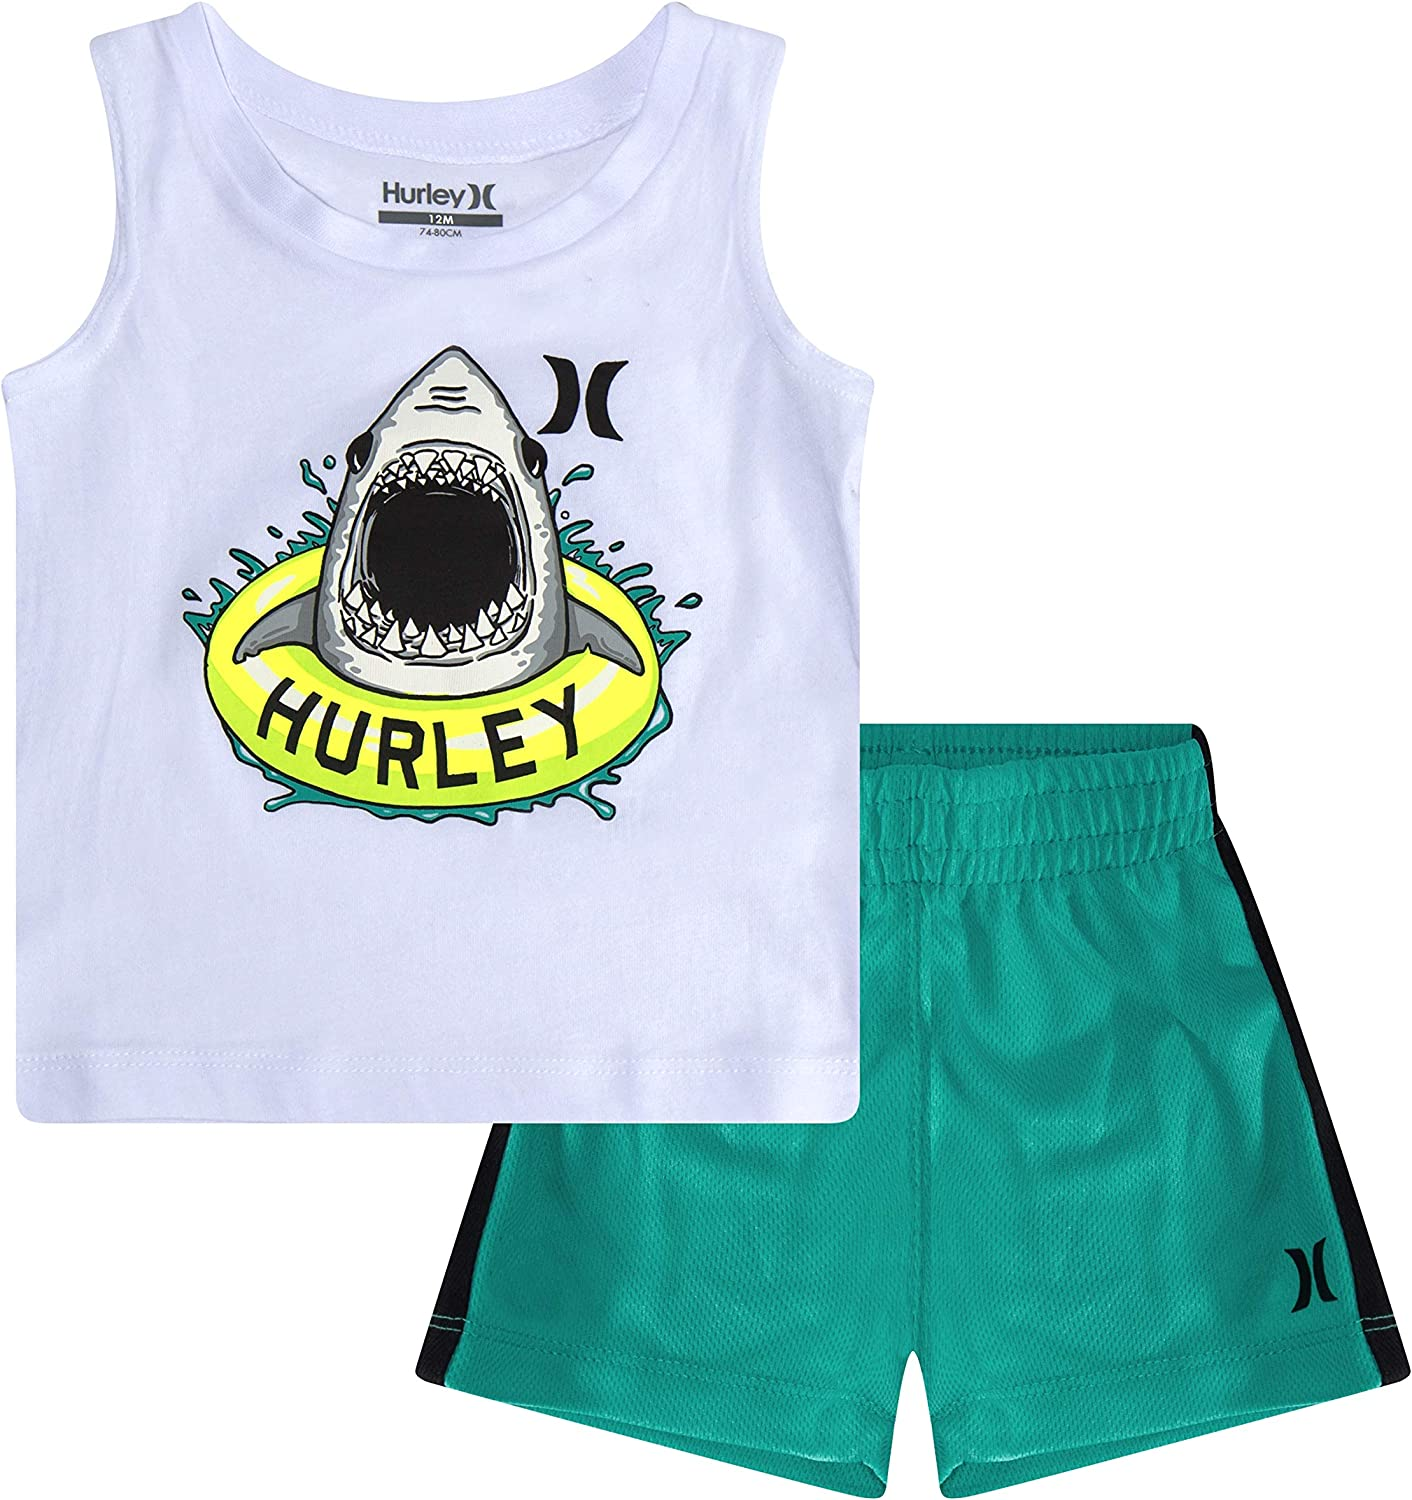 Hurley Baby Boys' Tank Top and Shorts 2-Piece Outfit Set